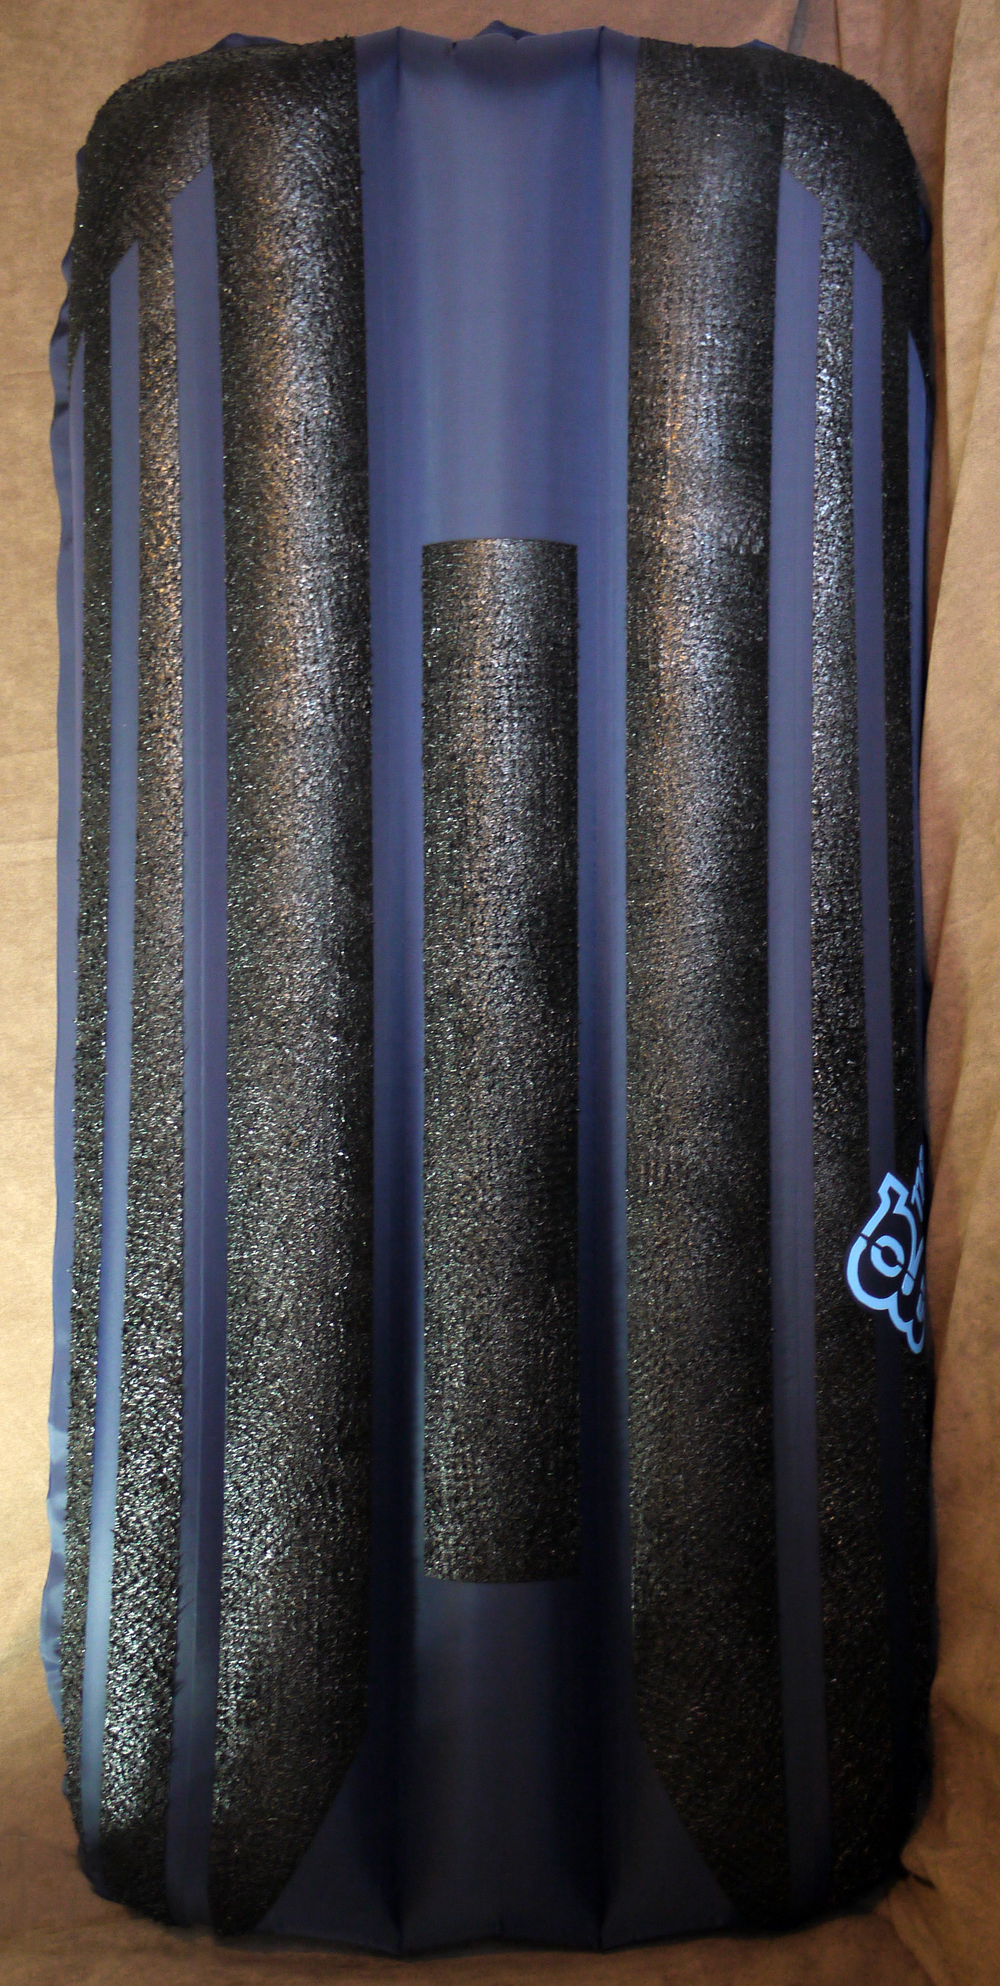 G-Mat 112 AKA Kessel Run Surfmat surf mat Bryn Dampney Deck